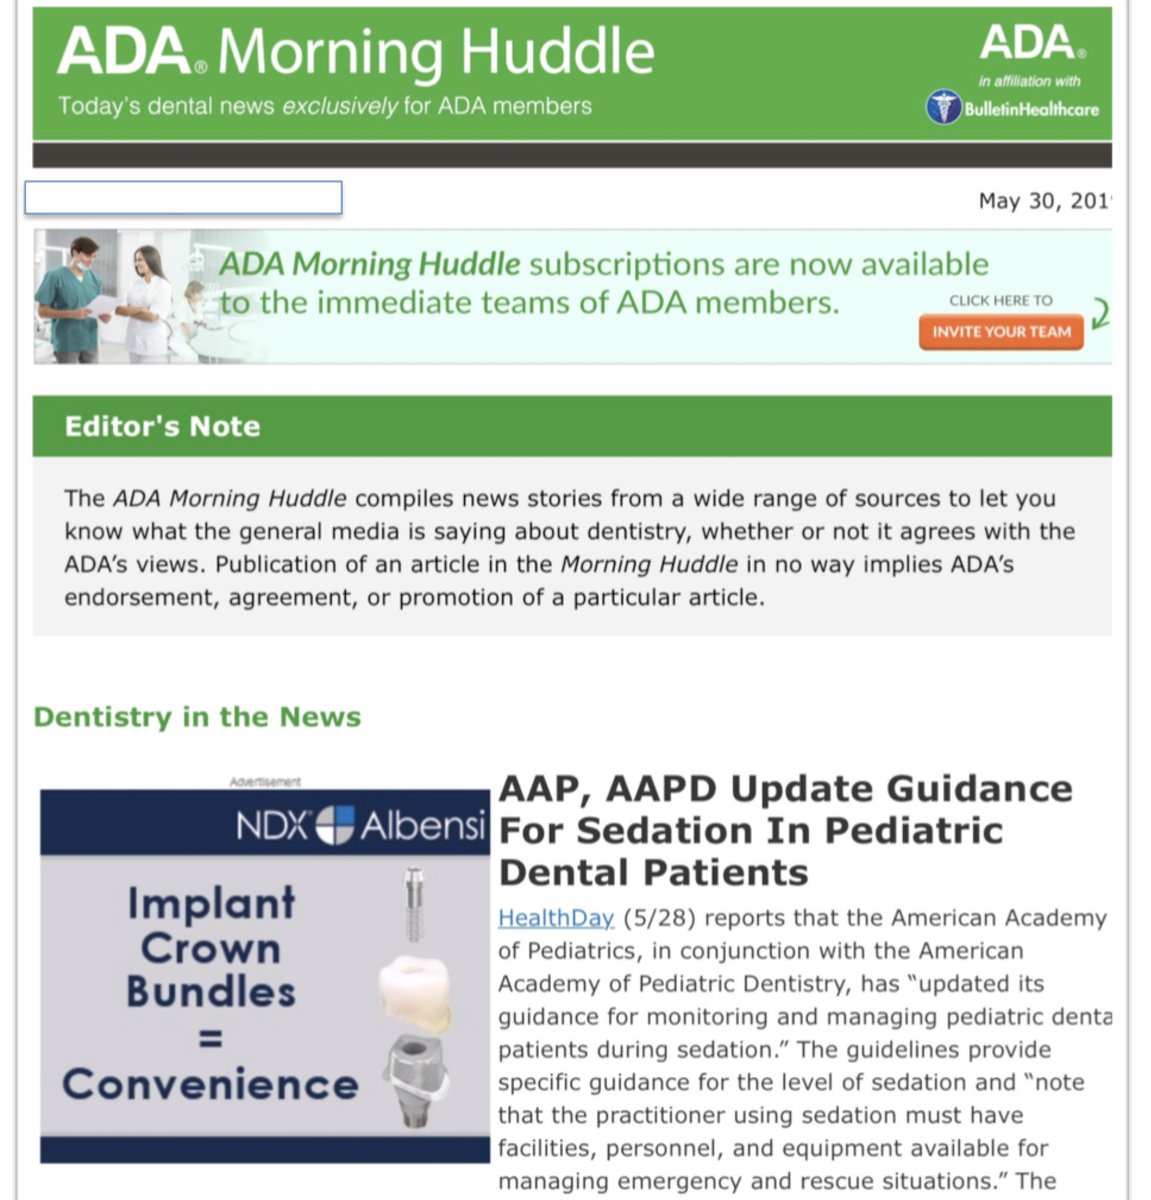 Media Tweets by American Society of Dentist Anesthesiologists